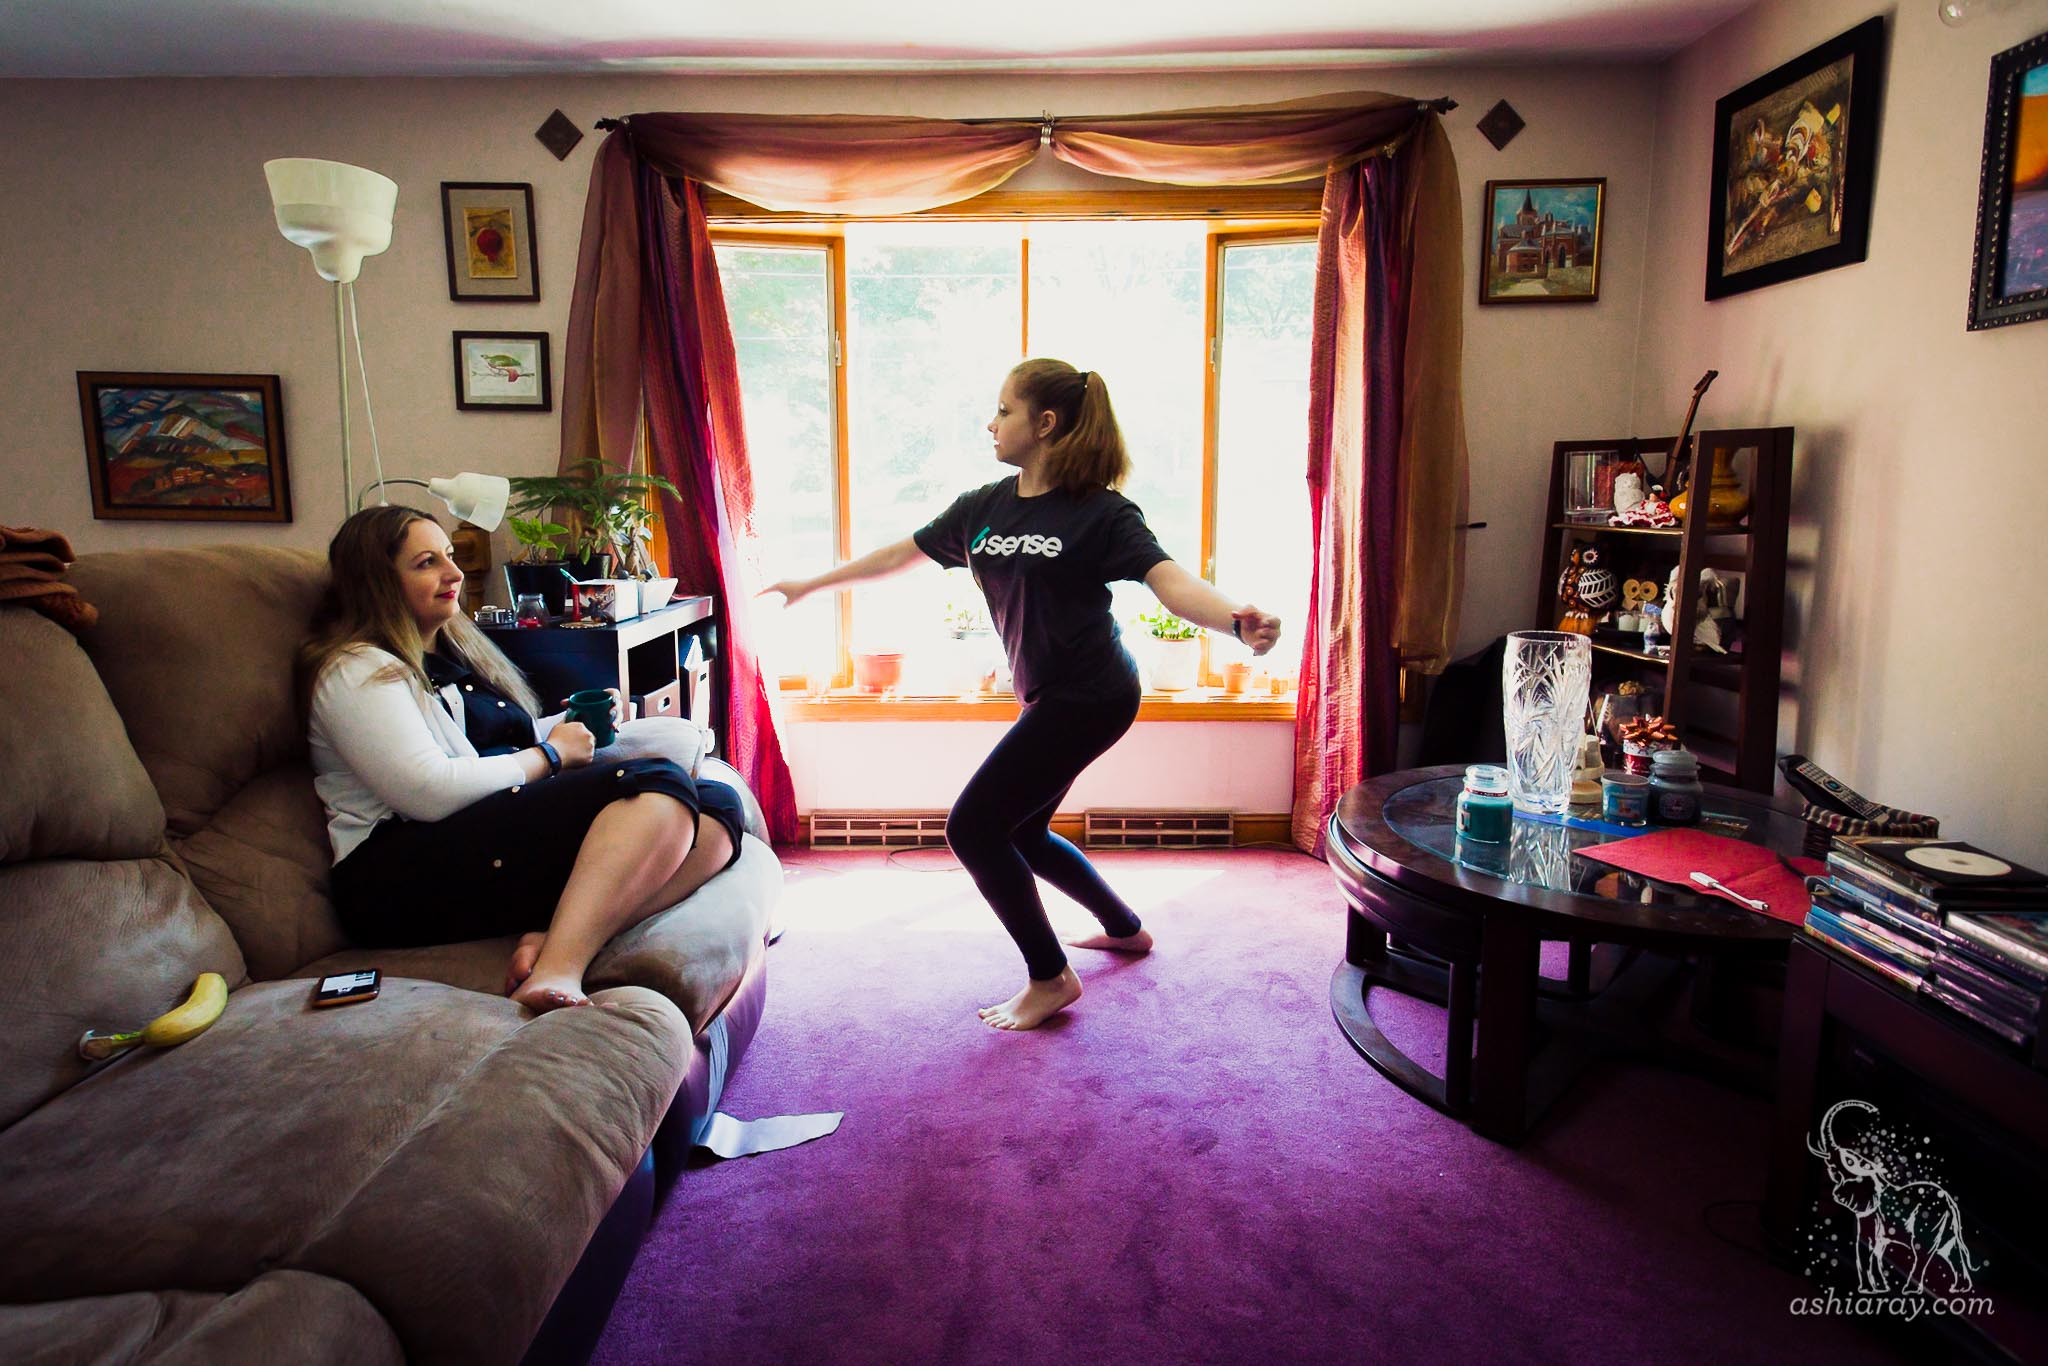 Teen girl dances in living room with purple rug